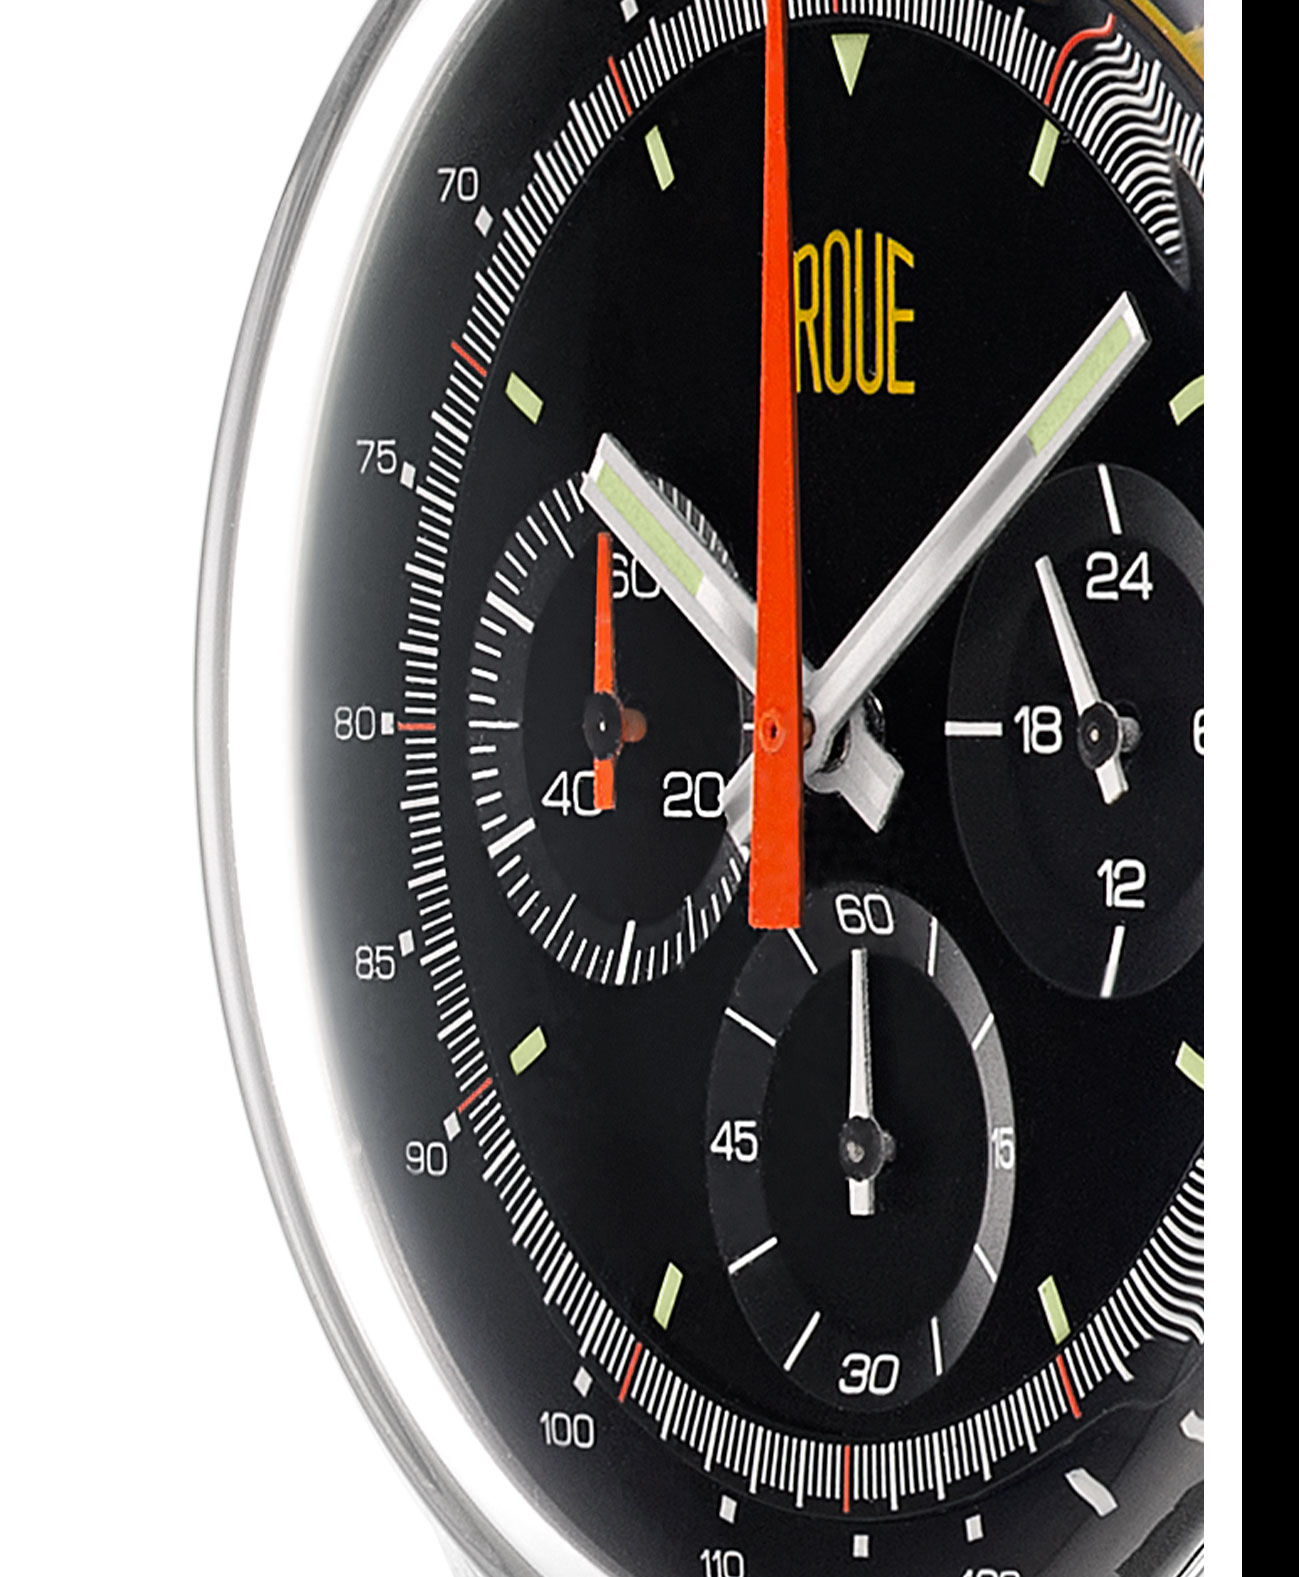 Roue Watch TPS Model - Seiko VK63 Meca-Quartz Movement